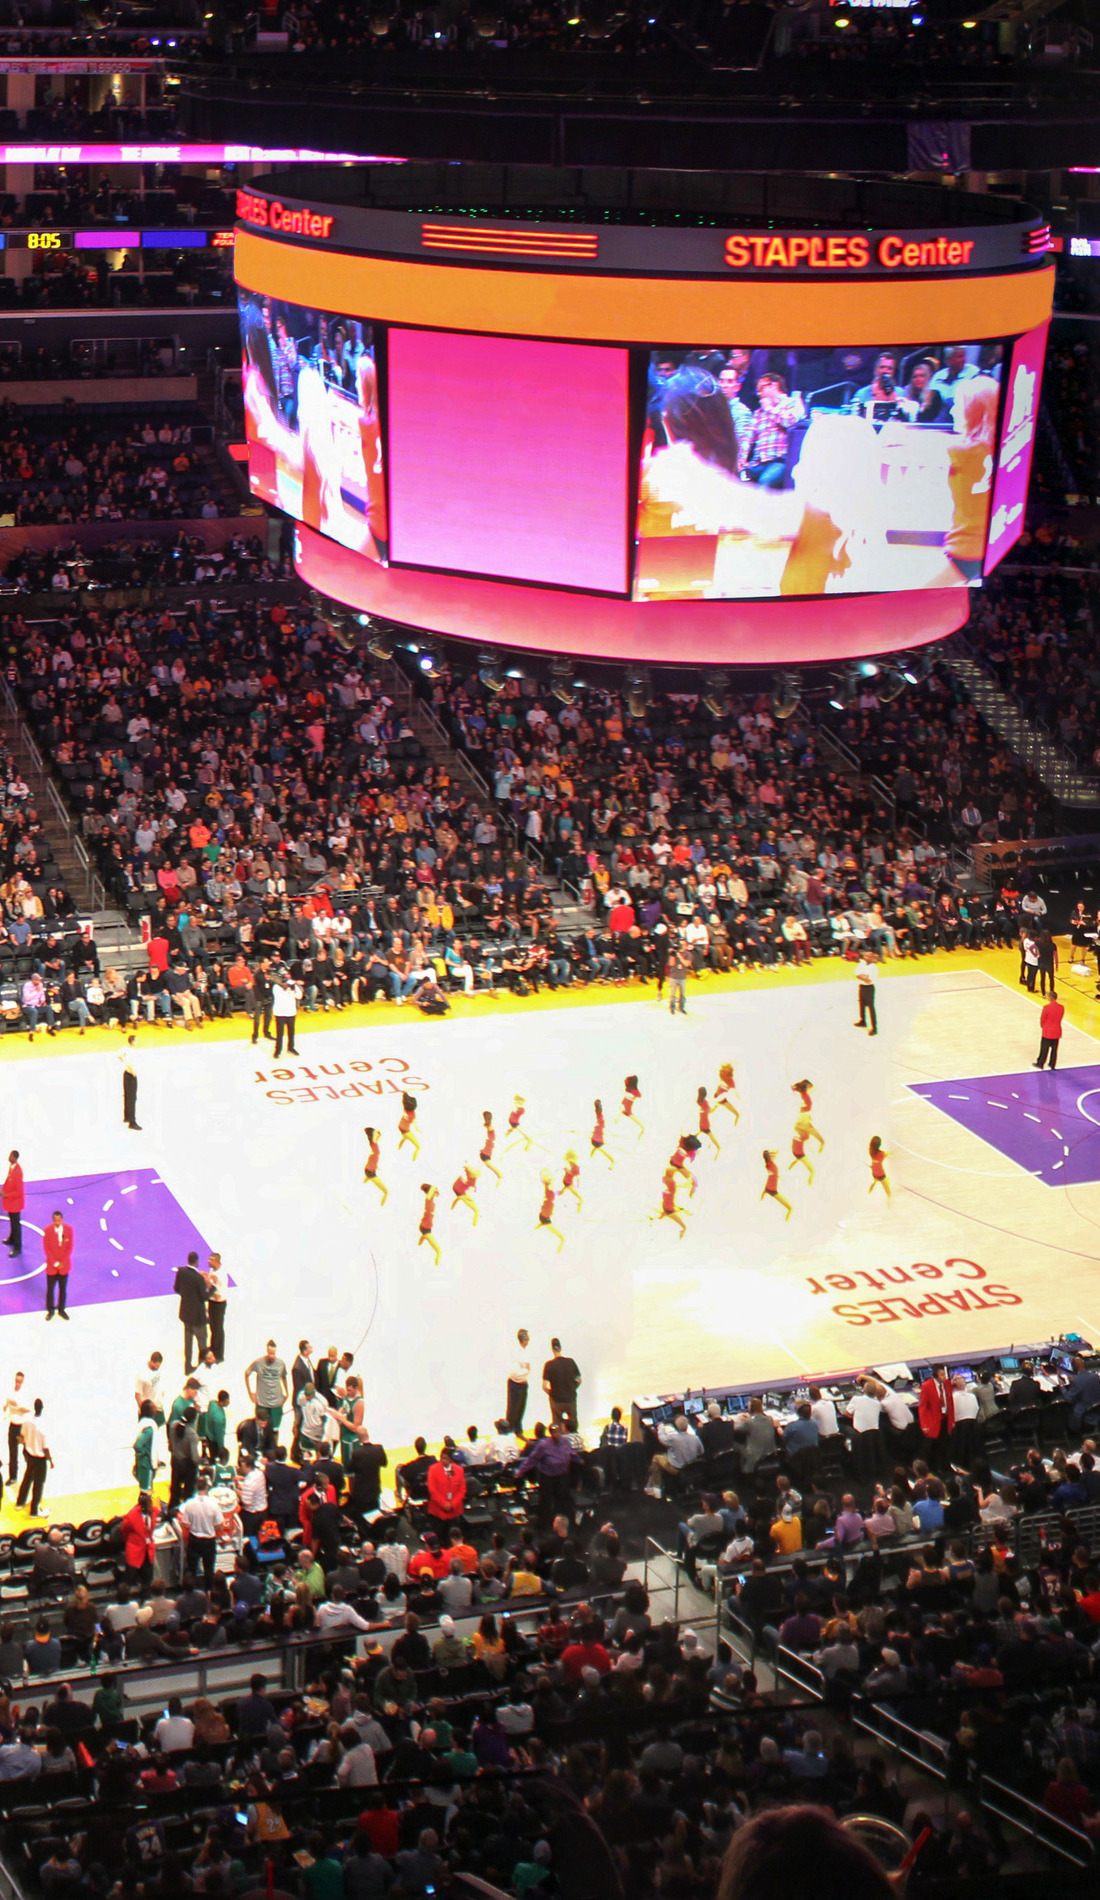 A Los Angeles Lakers live event